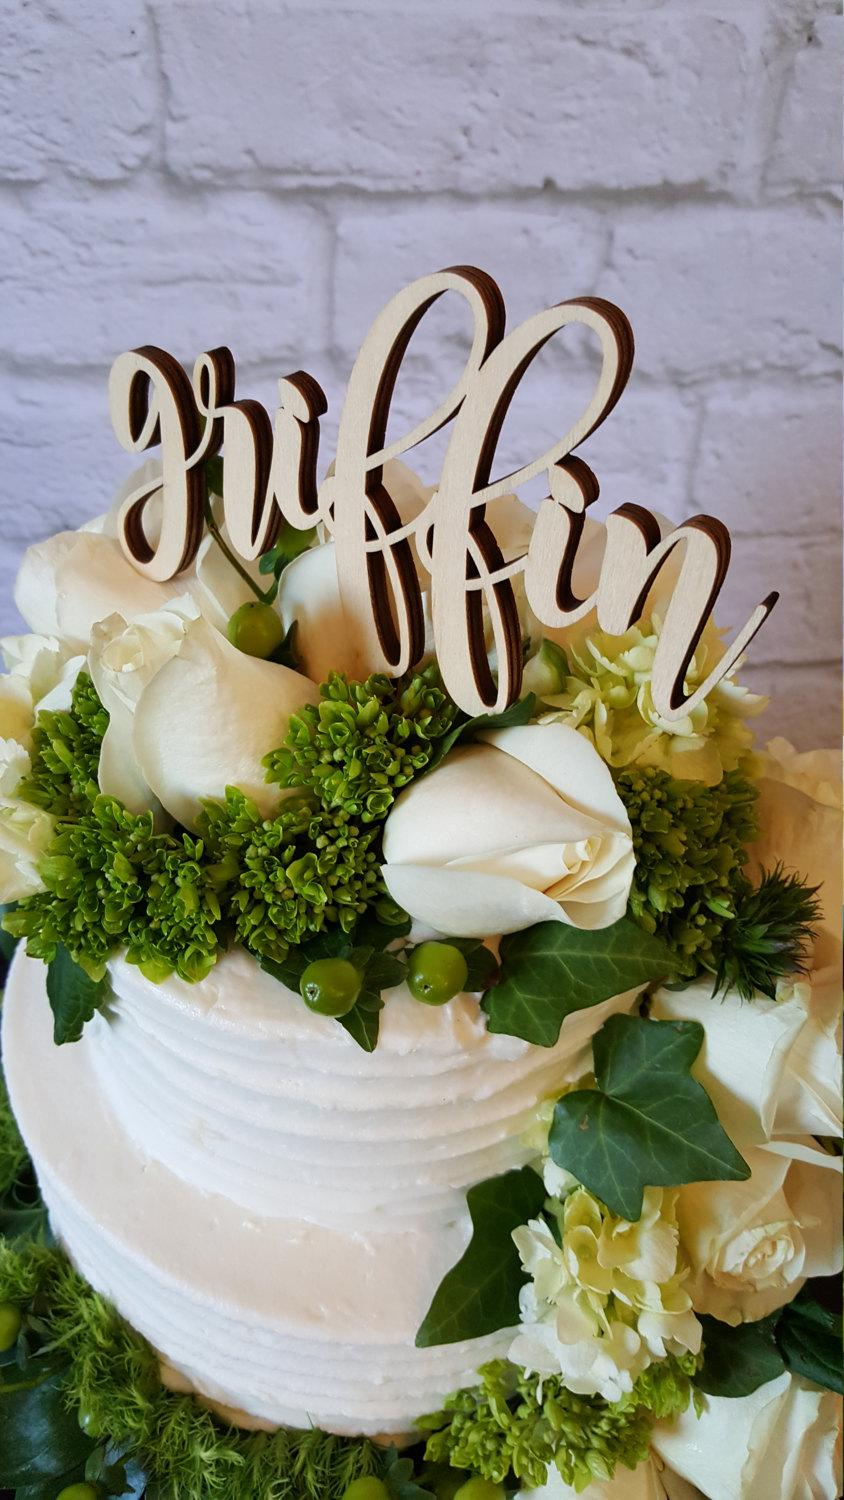 Mariage - Custom Name Cake Topper - UNPAINTED Wooden Monogram Cake Topper - Wedding Cake Topper - Birthday Cake Topper